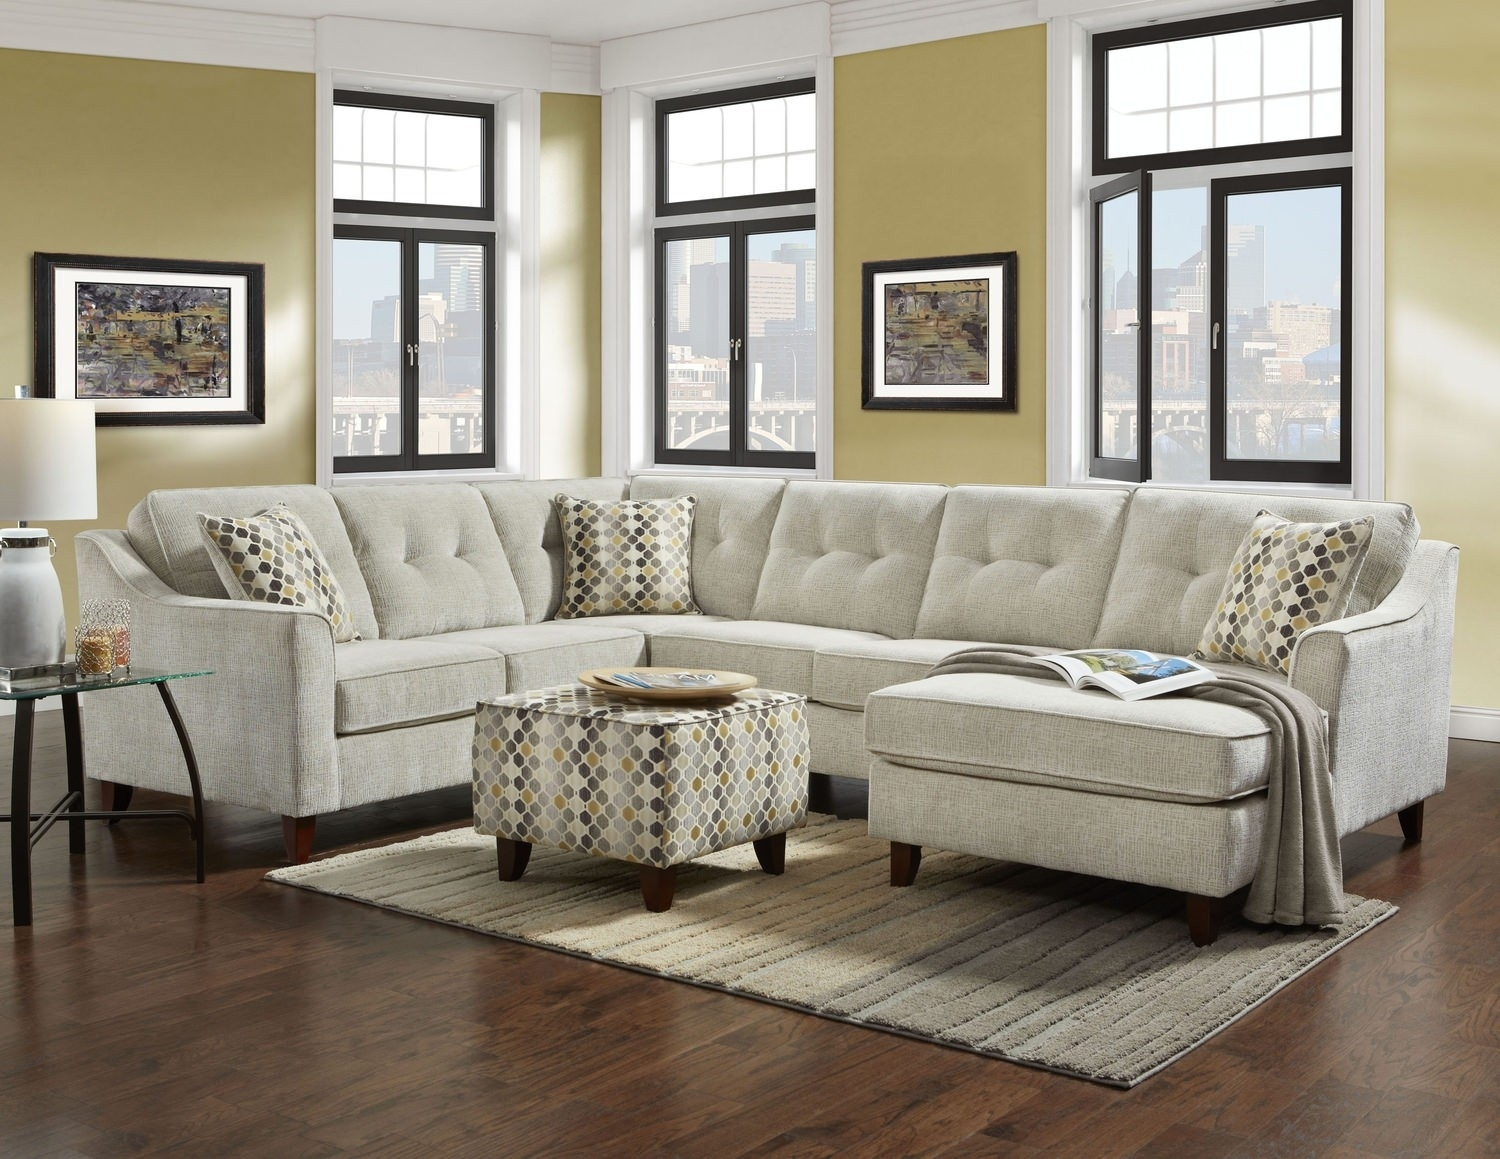 3 Piece Sectional Malbry Point W Laf Chaise Living Spaces 223533 0 With Malbry Point 3 Piece Sectionals With Raf Chaise (View 14 of 25)